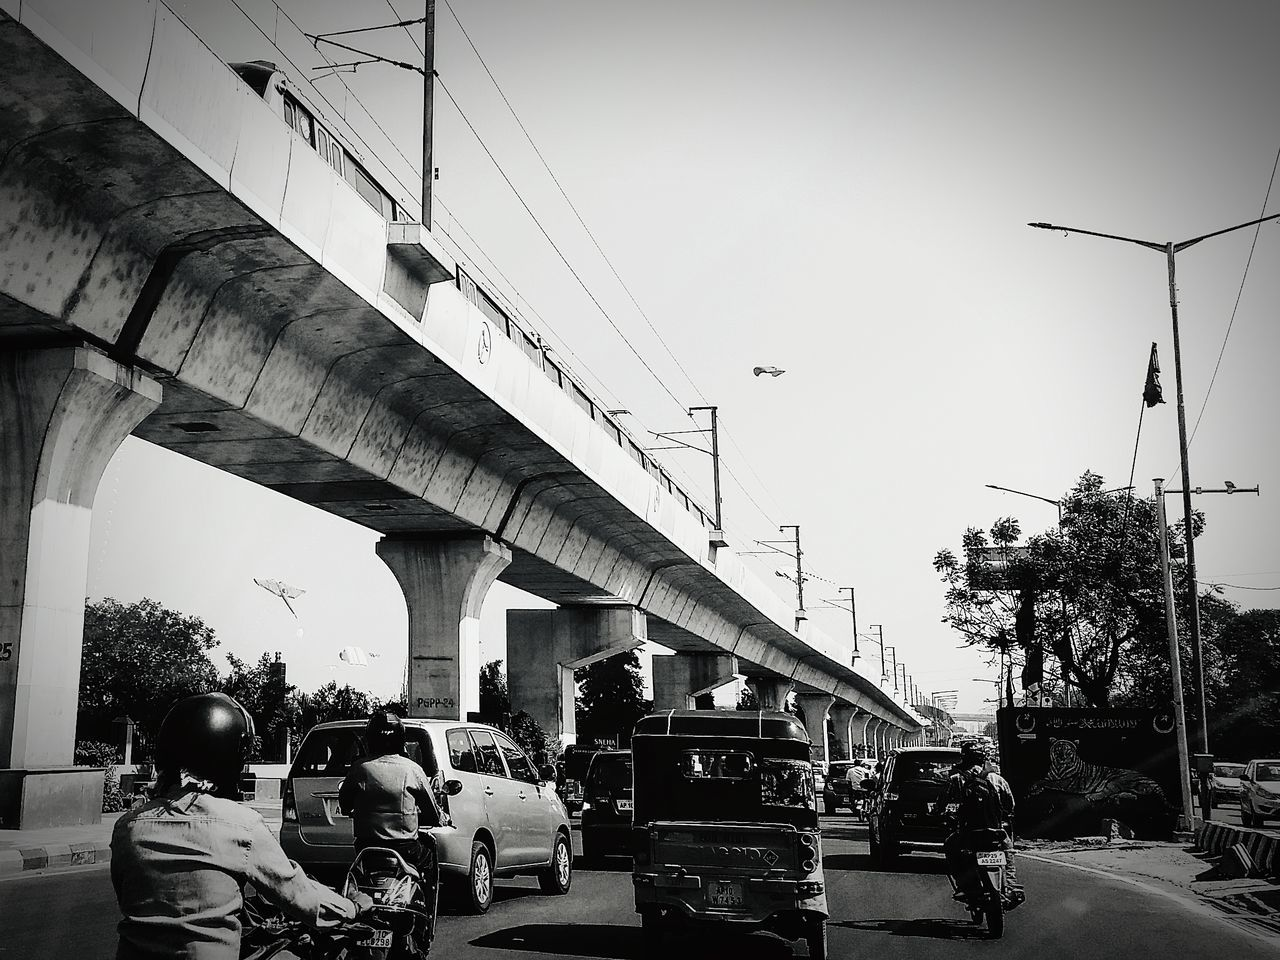 Modernity of Hyderabad metro rail in the backdrop of traditional kite flying on Sankranthi. Modernity Modern Traditional Metro Train Kite Flying Perspective Modernity & Tradition Outdoors Transportation Monochrome